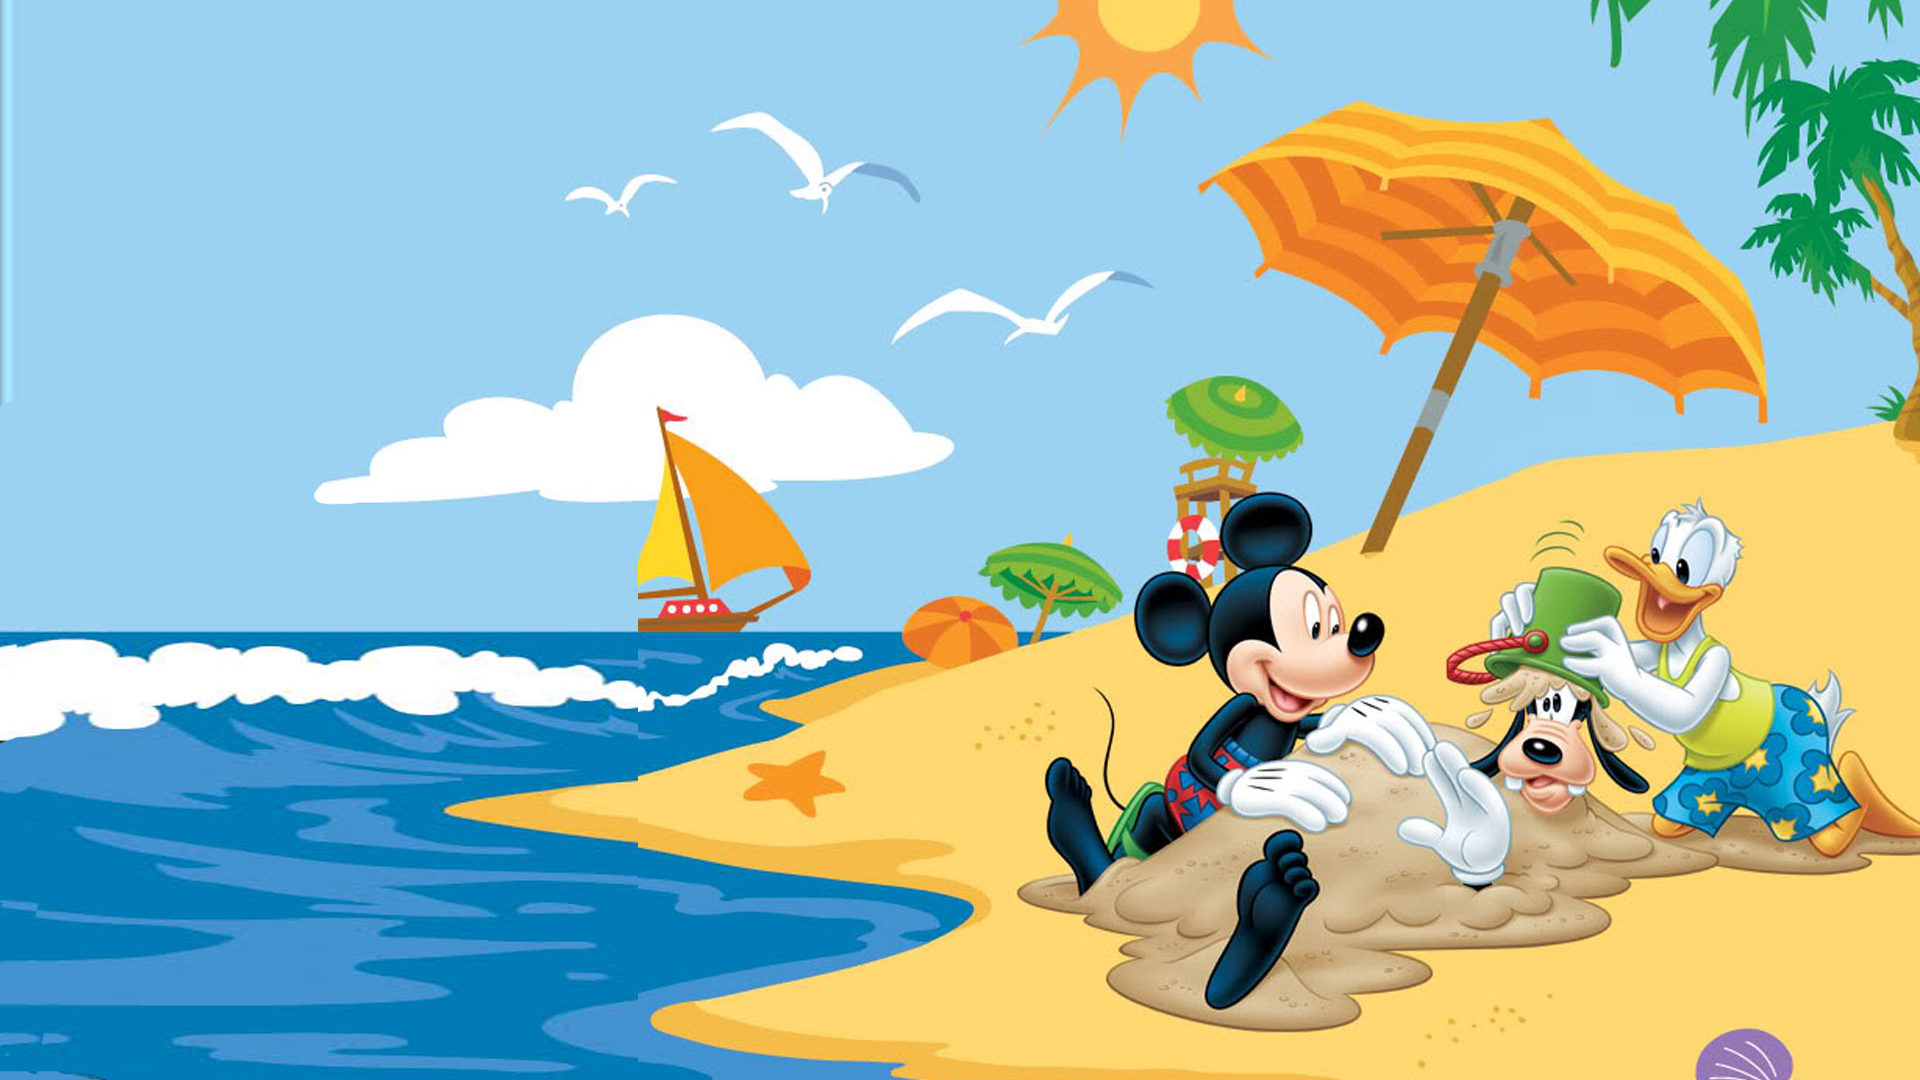 Cute Winnie The Pooh Iphone Wallpapers Summer Adventures With Mickey Mouse Donald Duck Goofy